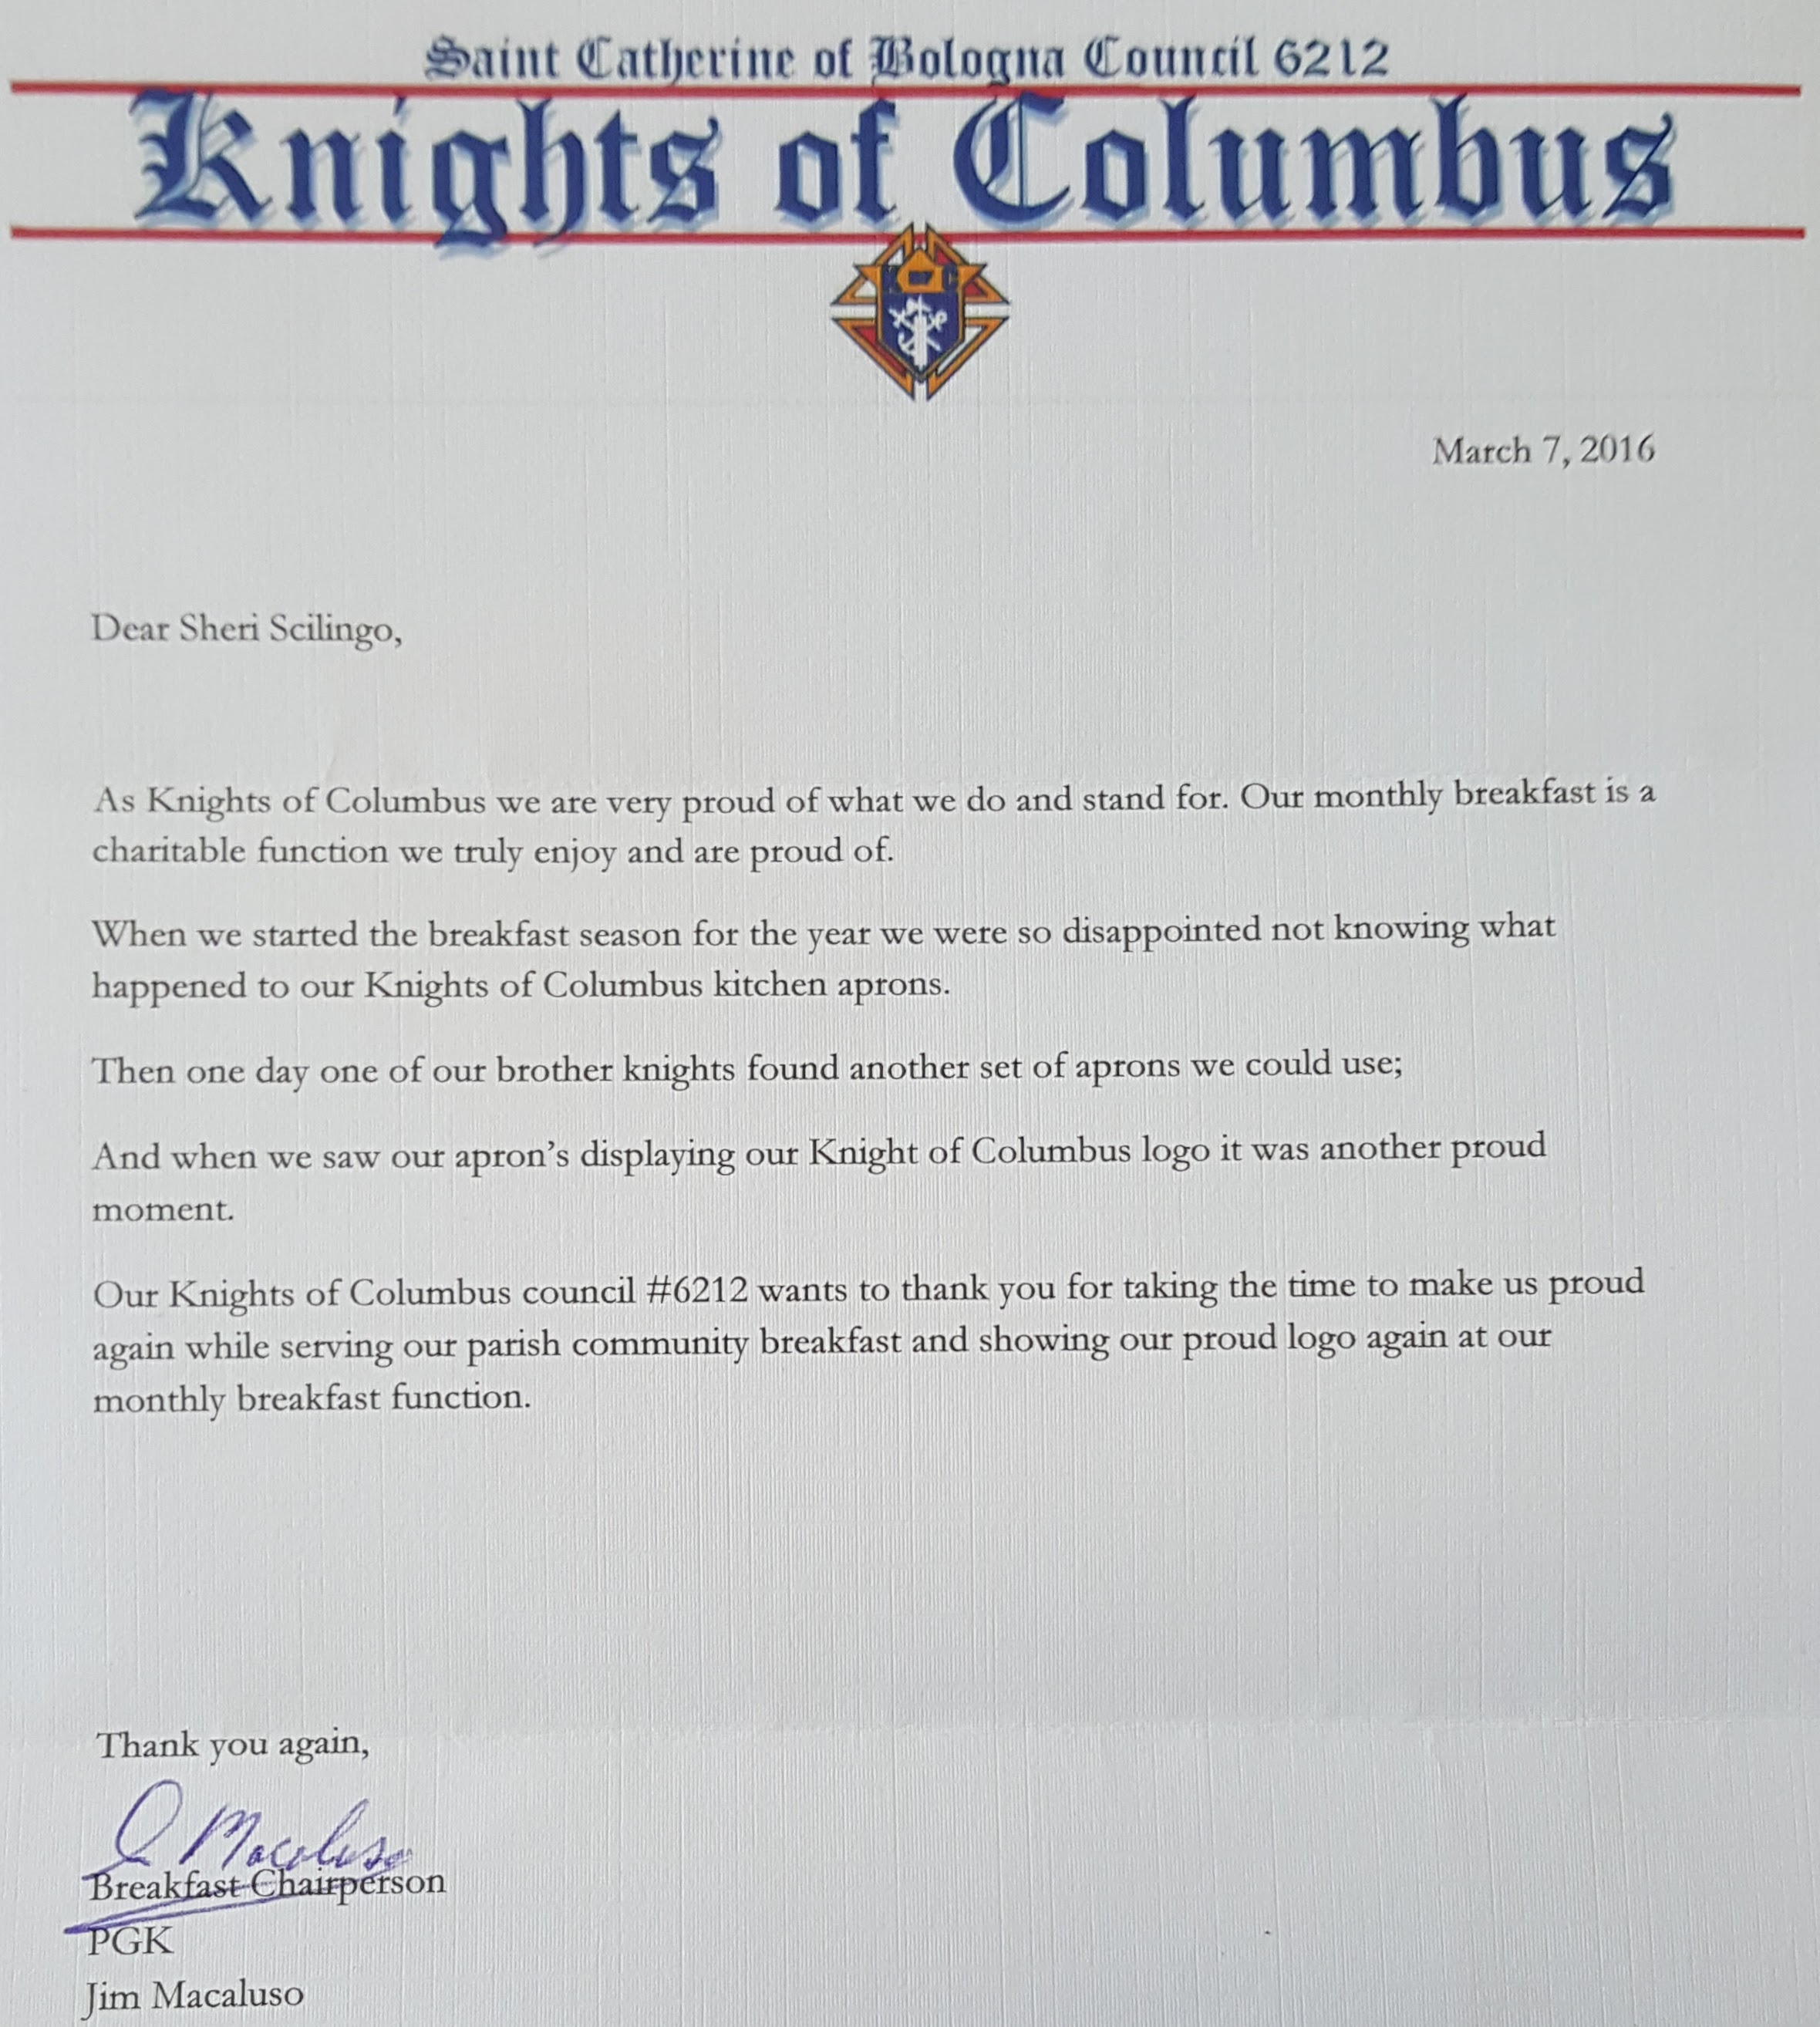 It's so important to support charitable organizations like the Knights of Columbus